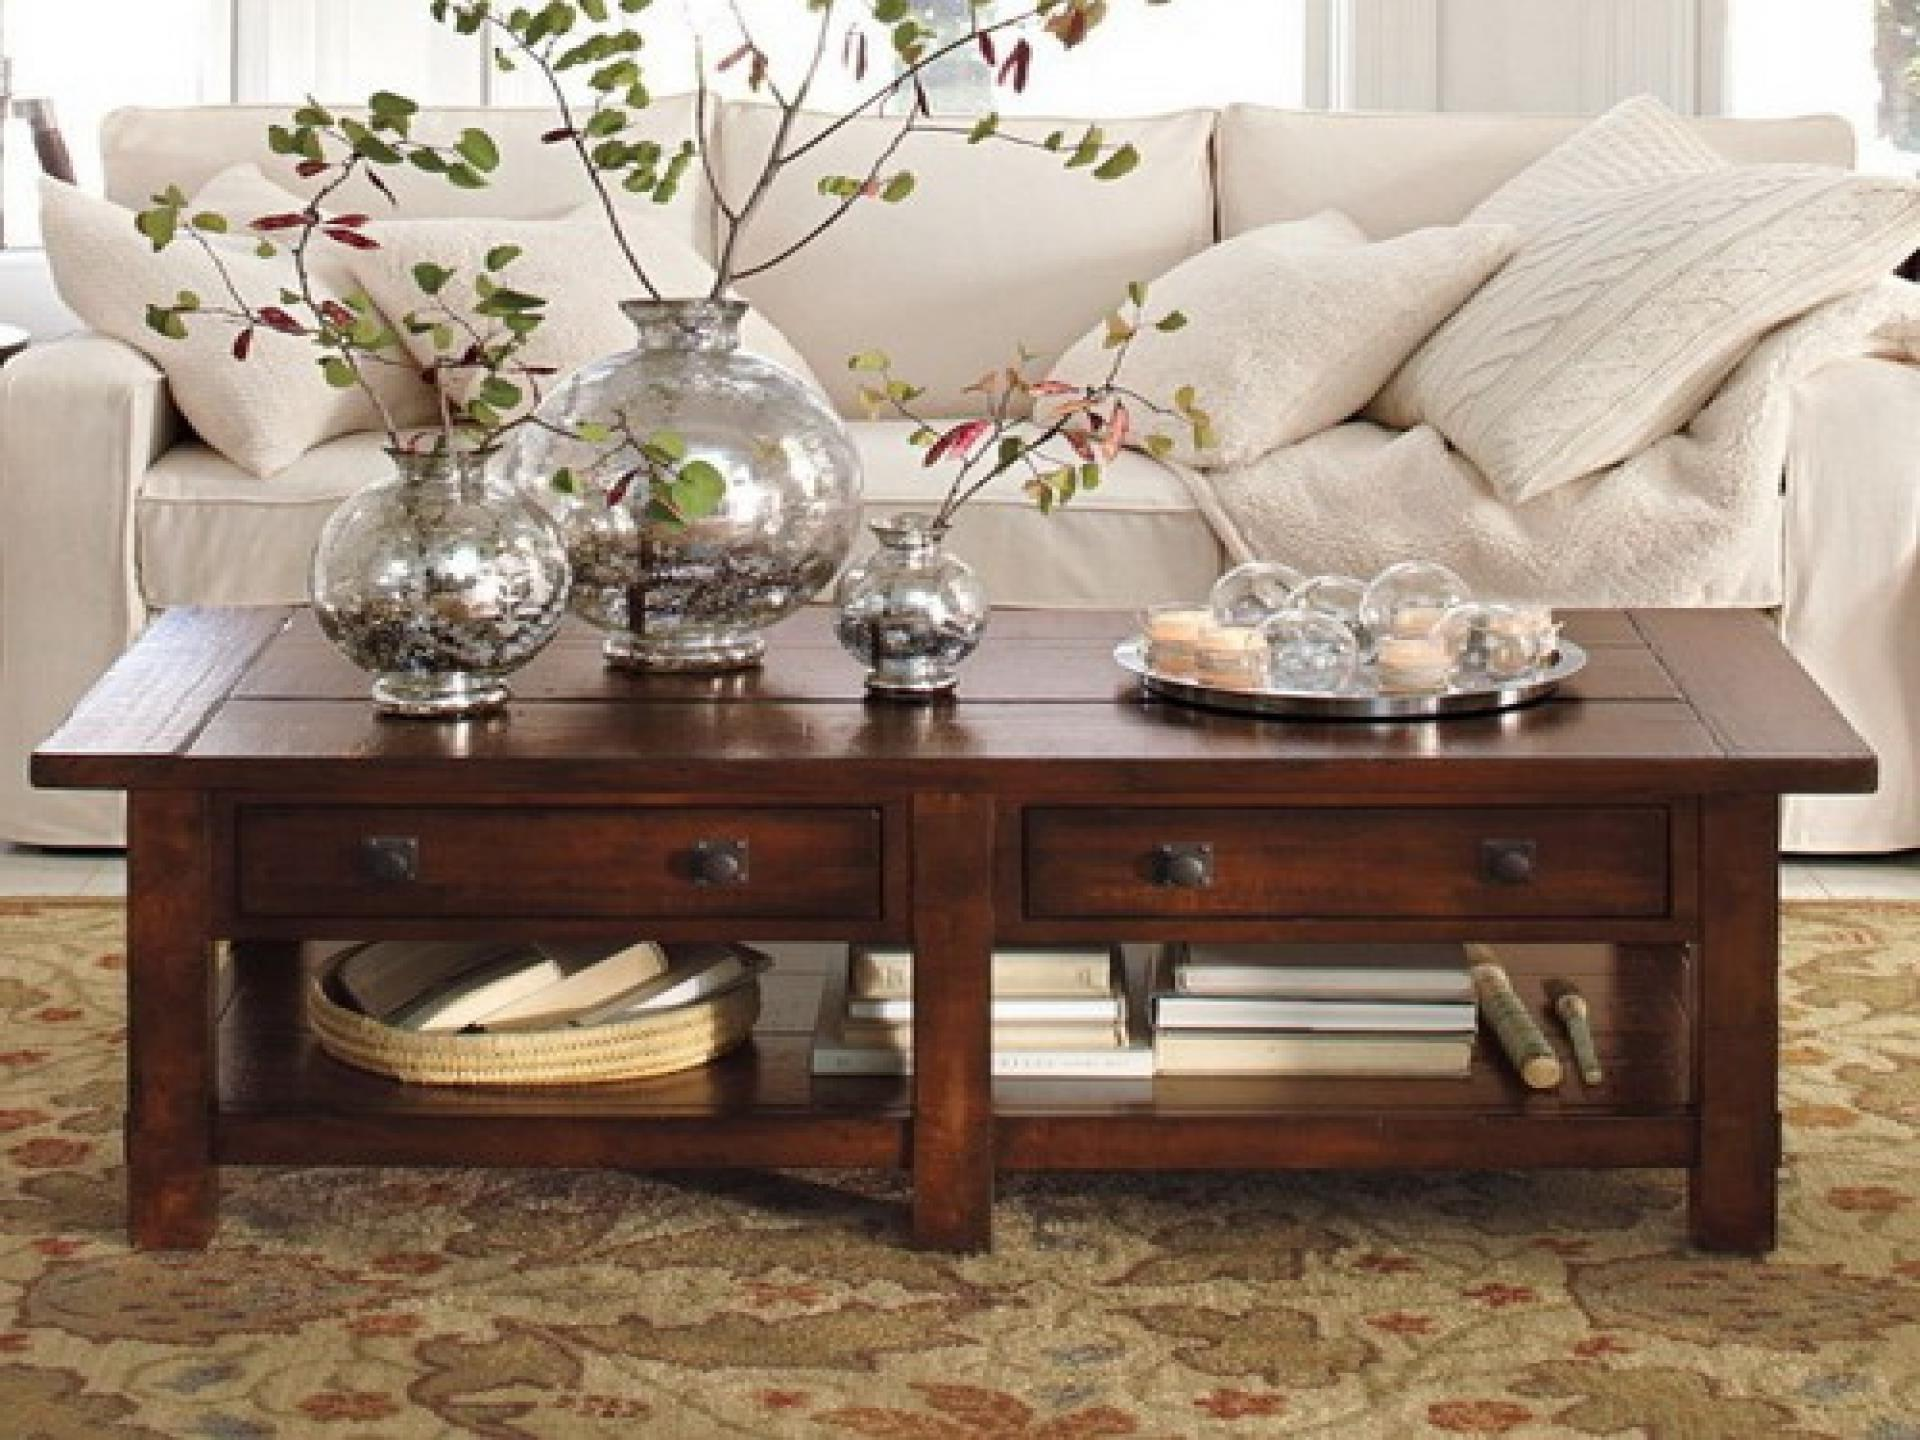 Coffee Table Centerpiece Home Accessories